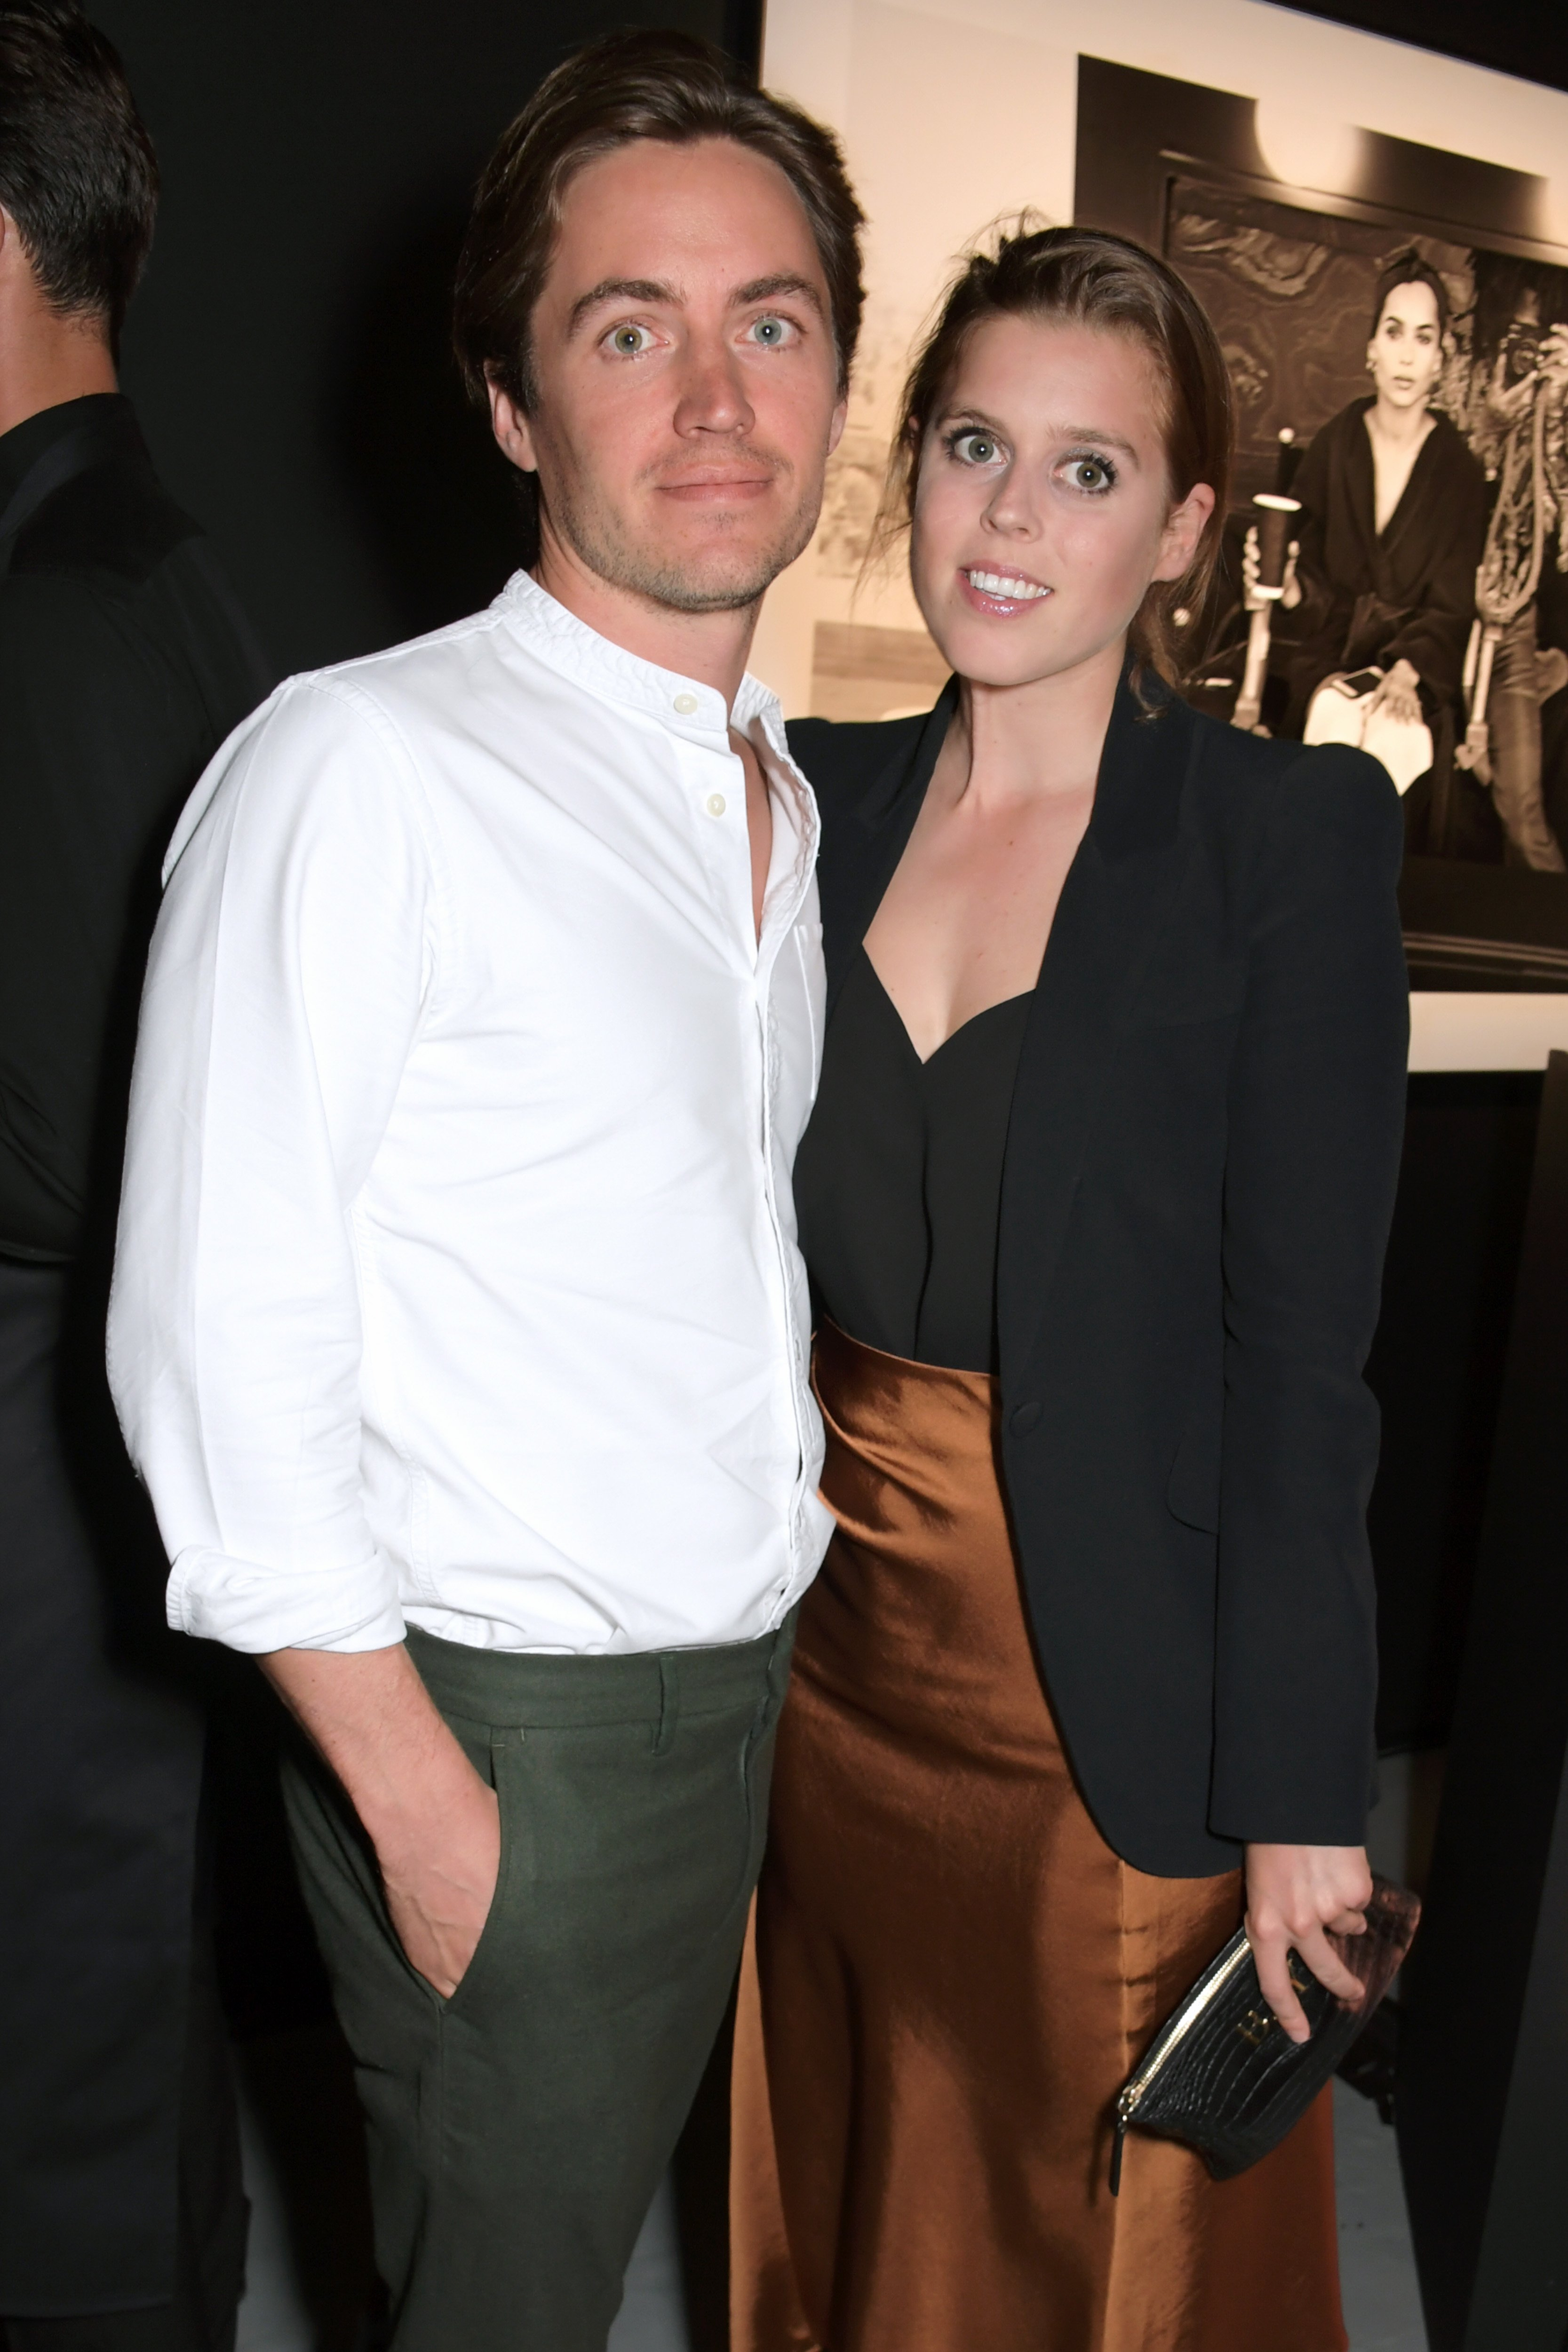 Edoardo Mapelli Mozzi and Princess Beatrice attend the 'Assemblage' exhibition in London, England on July 10, 2019 | Photo: Getty Images